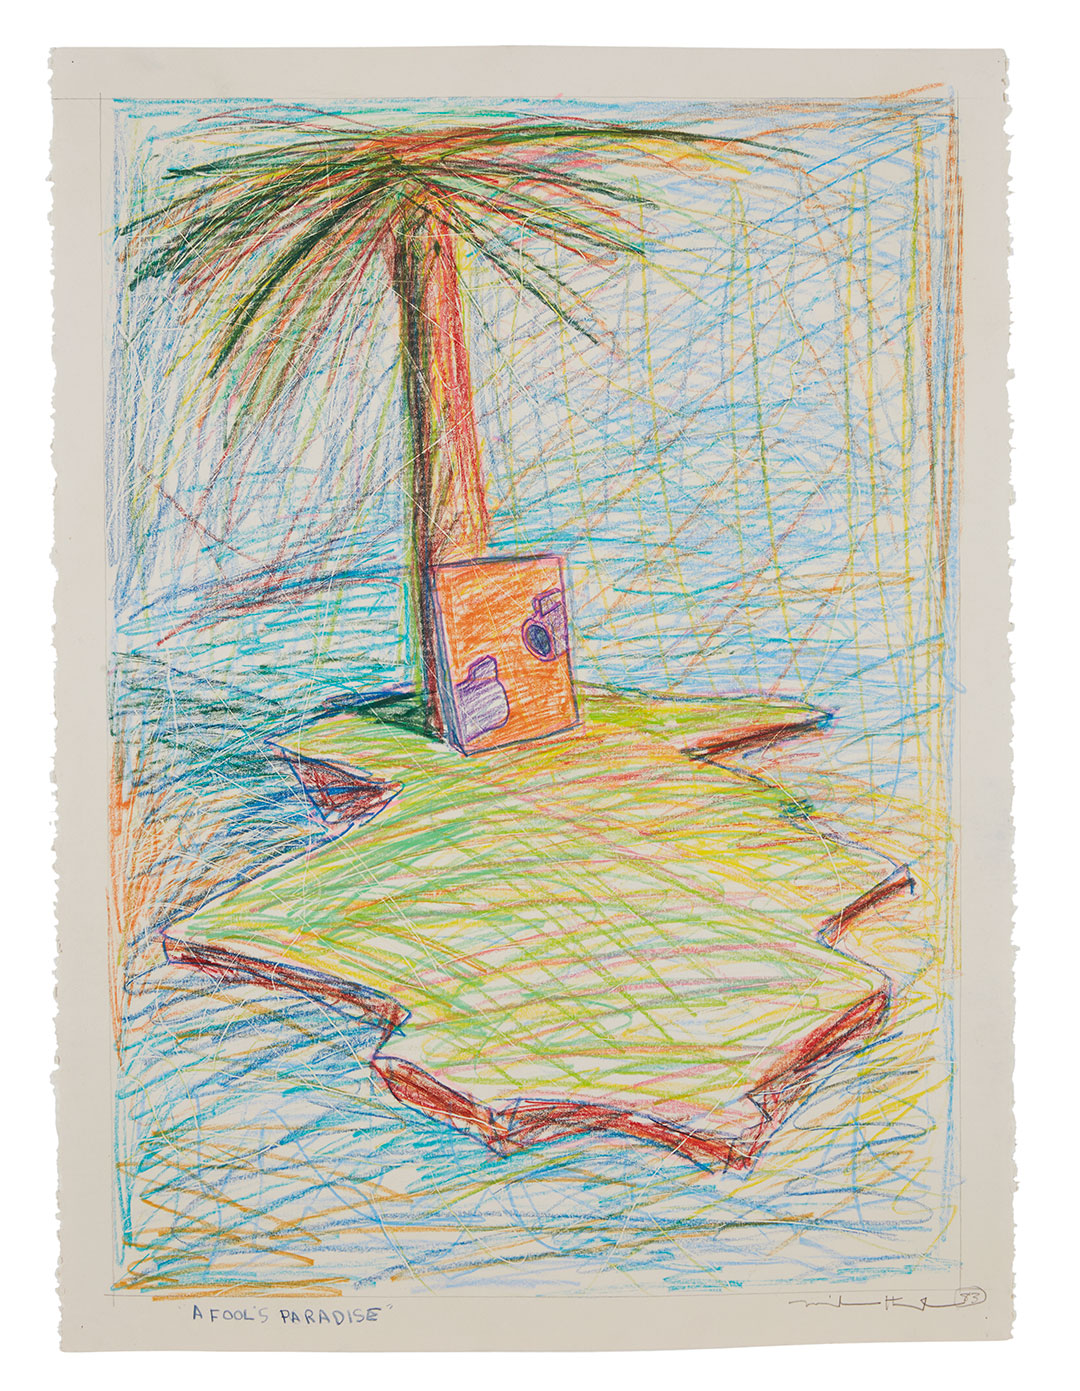 Drawing of a desert island with palm tree and canvas leaning against it with a gun draw on it.